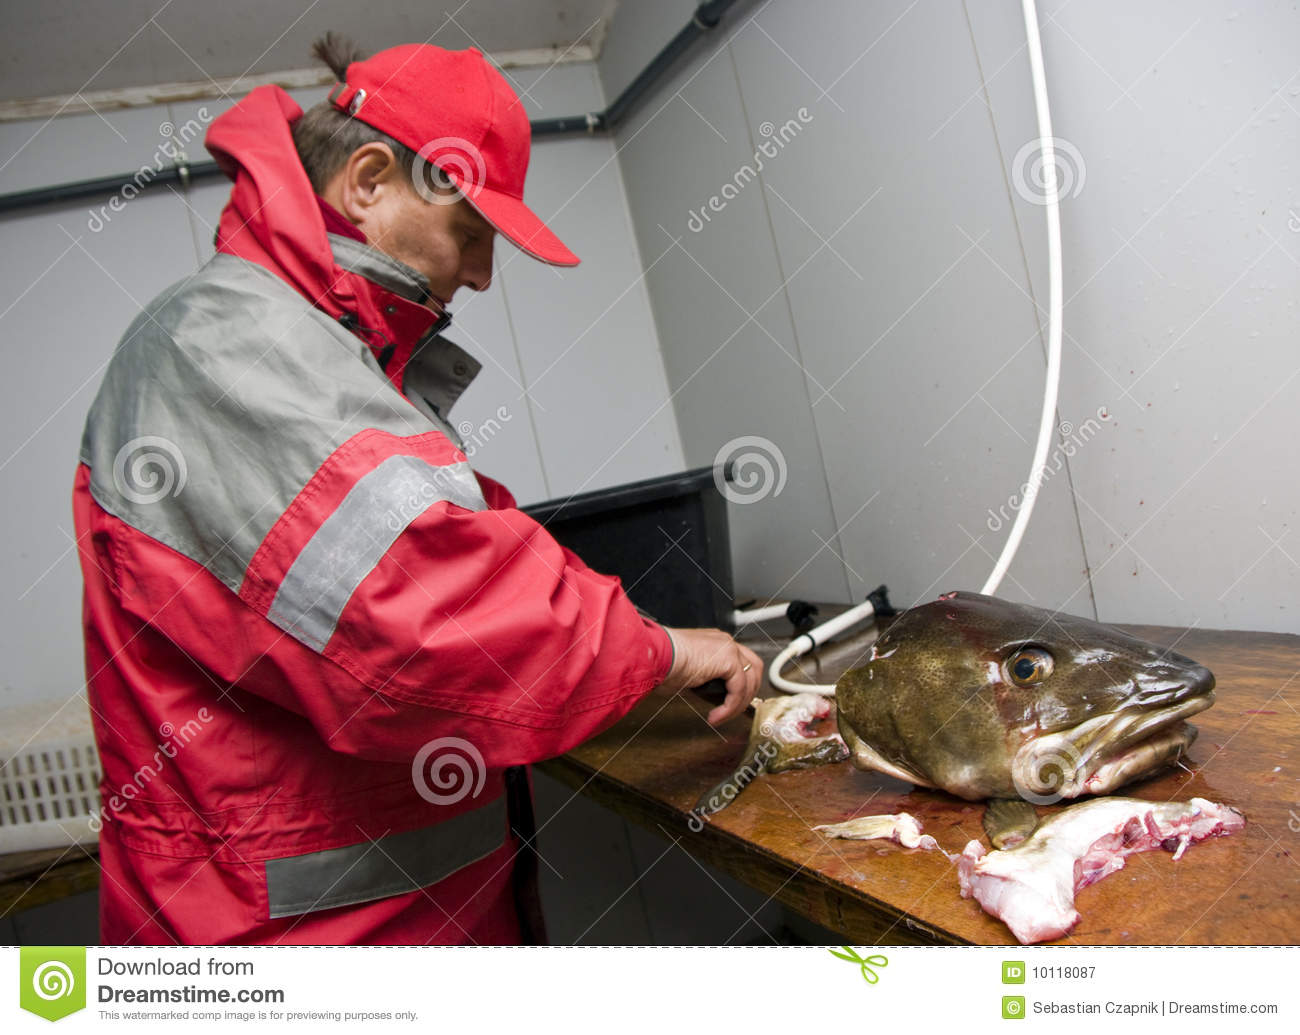 Fisherman filleting cod